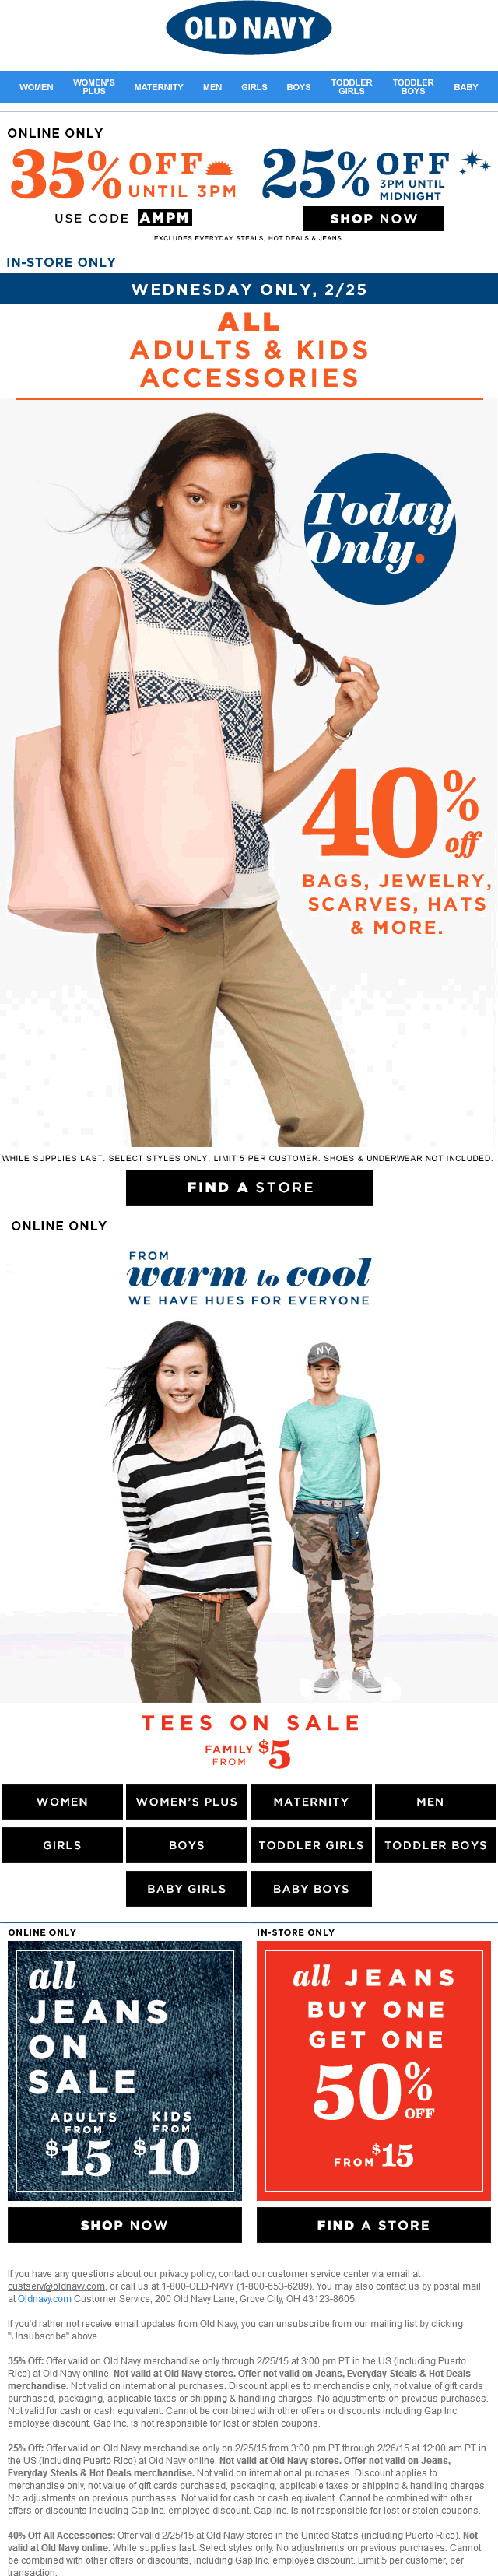 Old Navy Coupon August 2017 40% off accessories today at Old Navy, or 35% off online via promo code AMPM